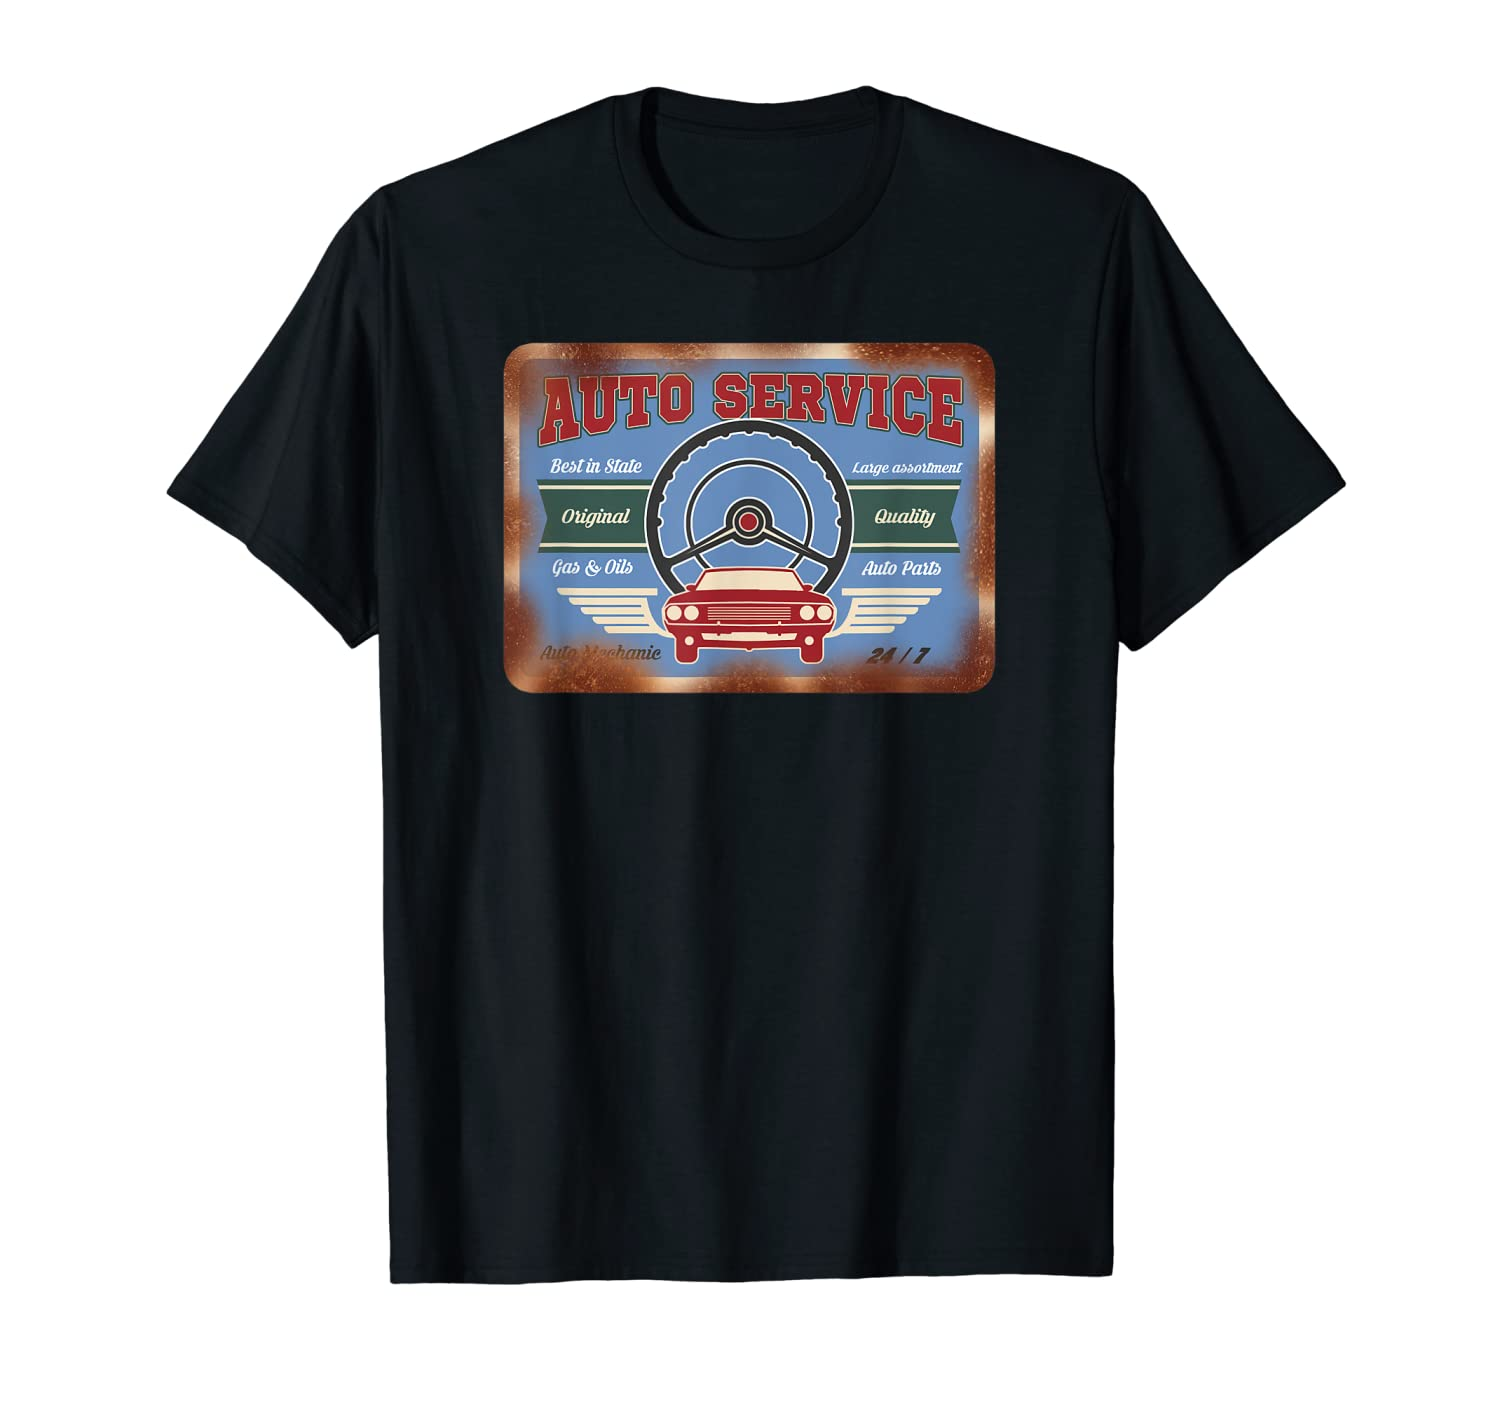 Auto Service Old Stuff Rusty Sign T Shirt Gift For Pickers